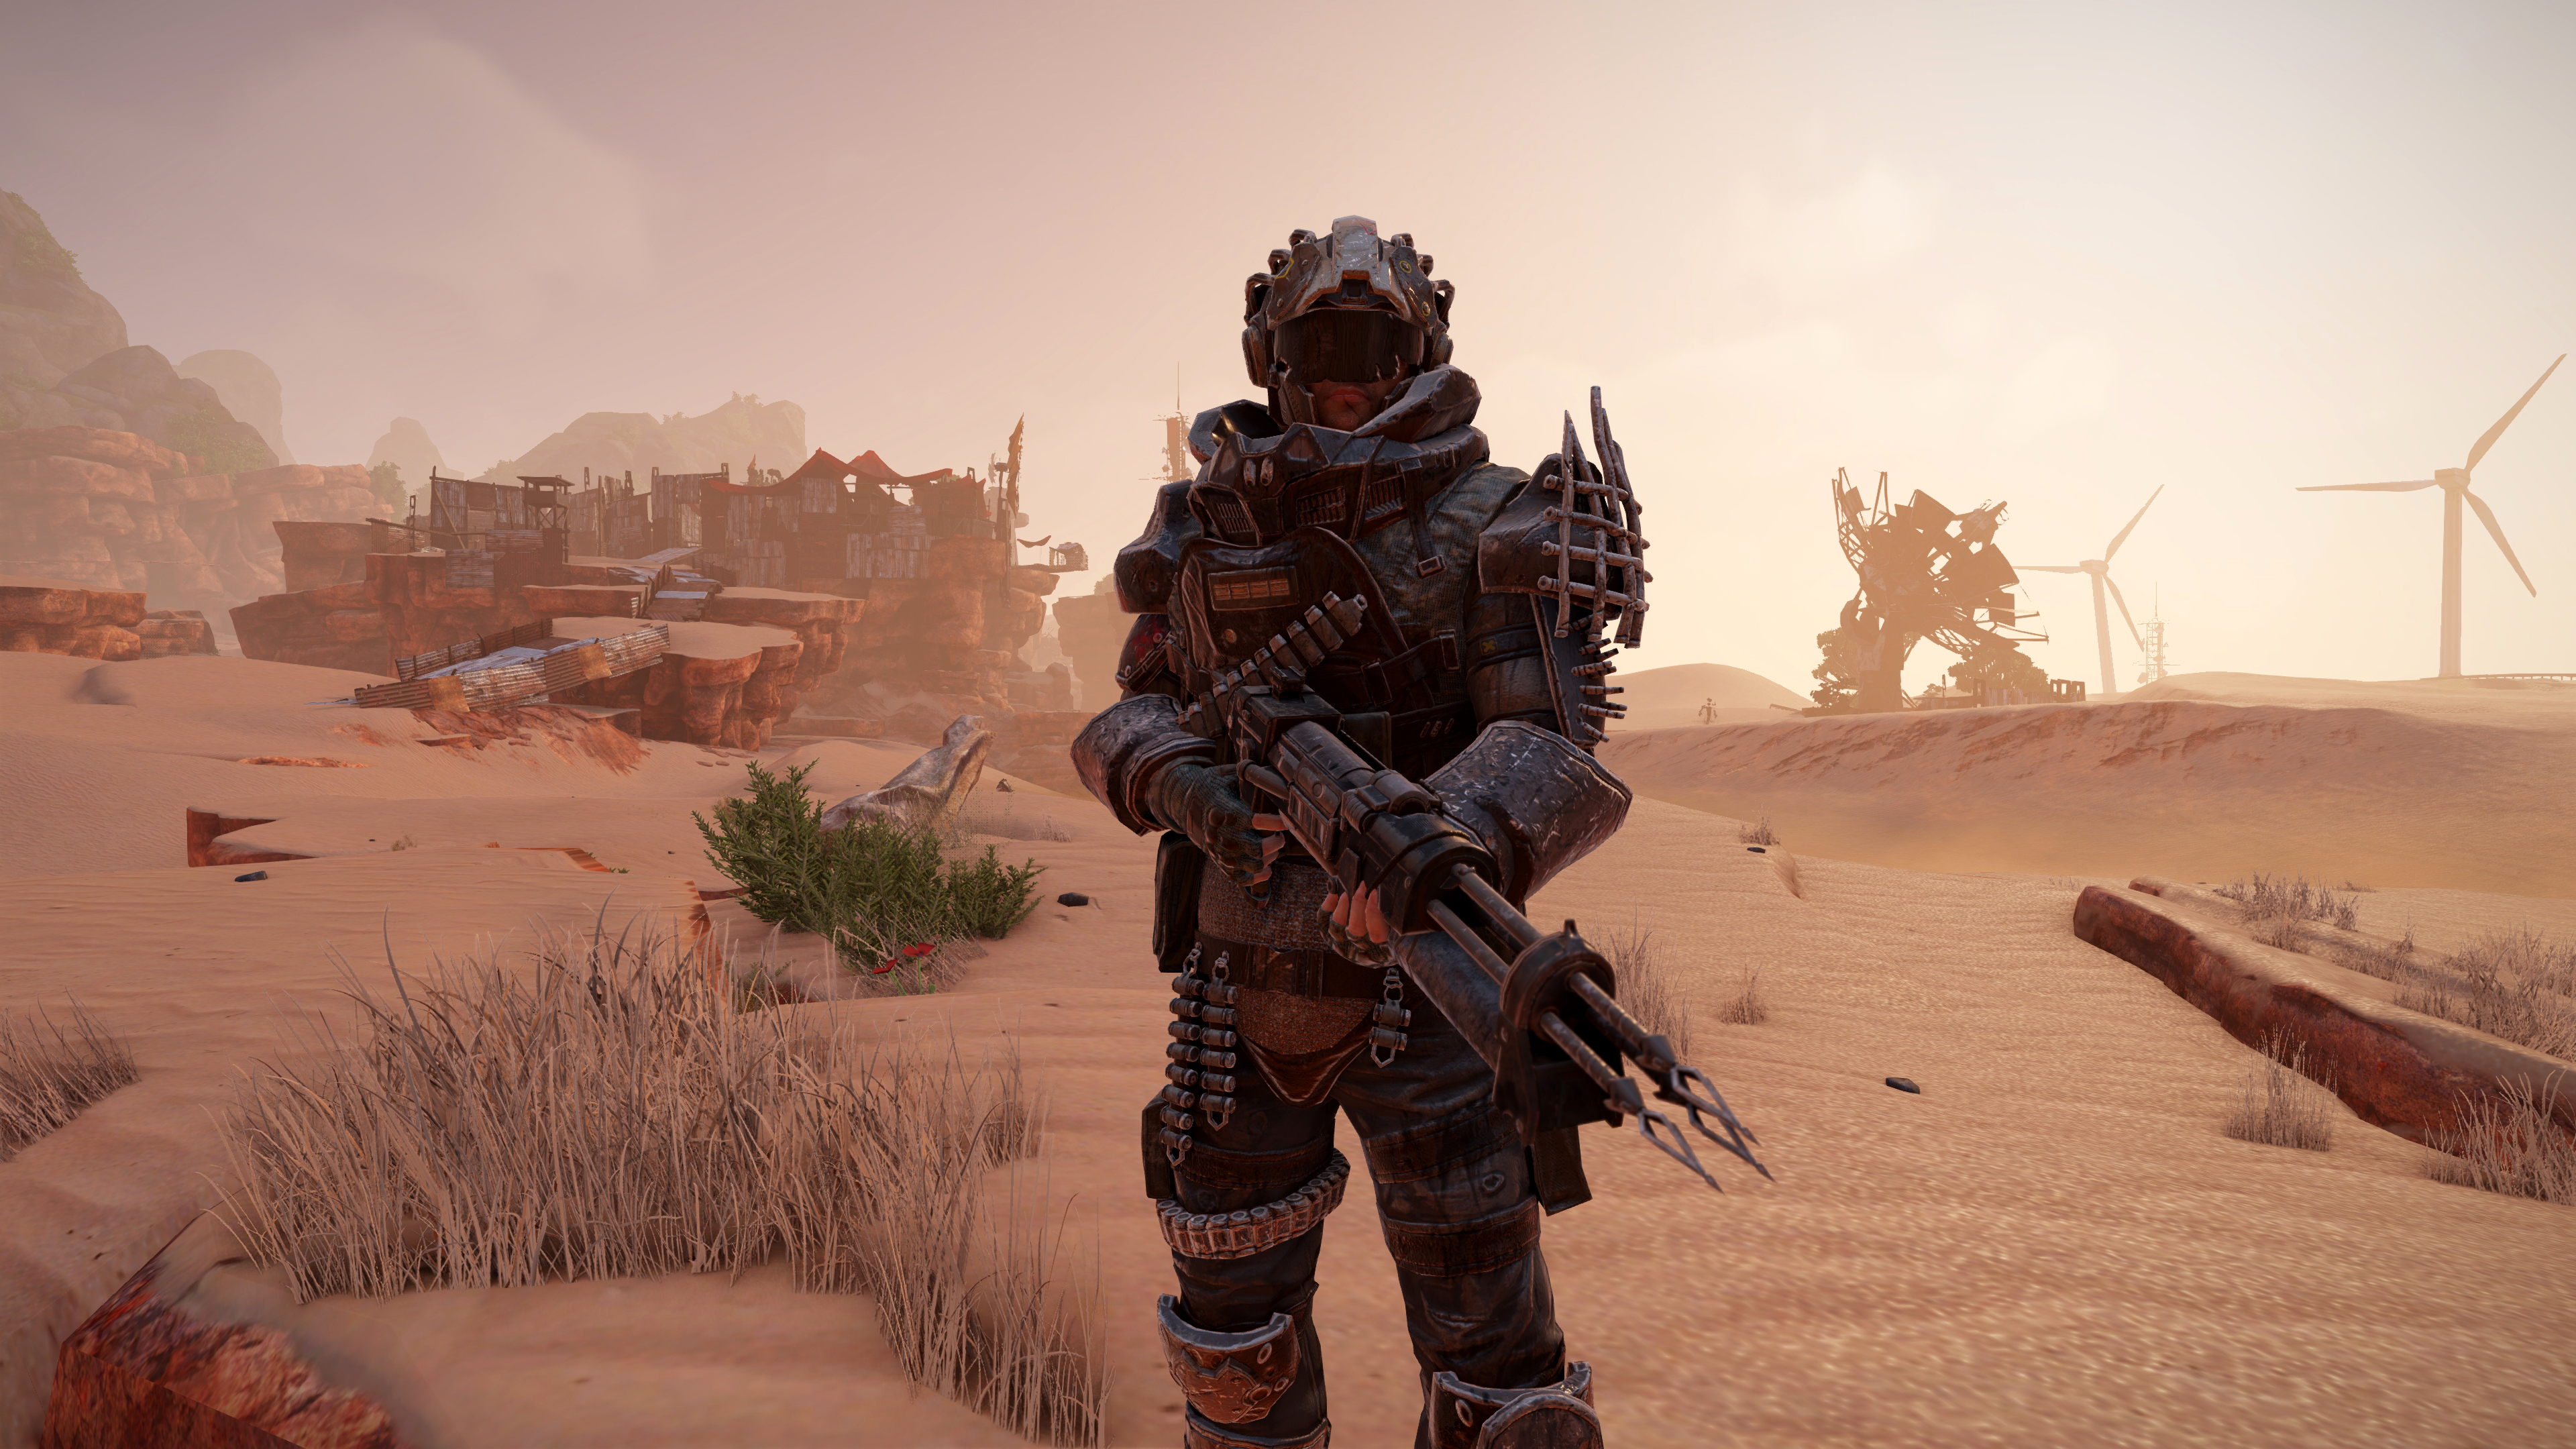 ELEX_high_tier_outlaw_armor_3840X2160_noUI_0127